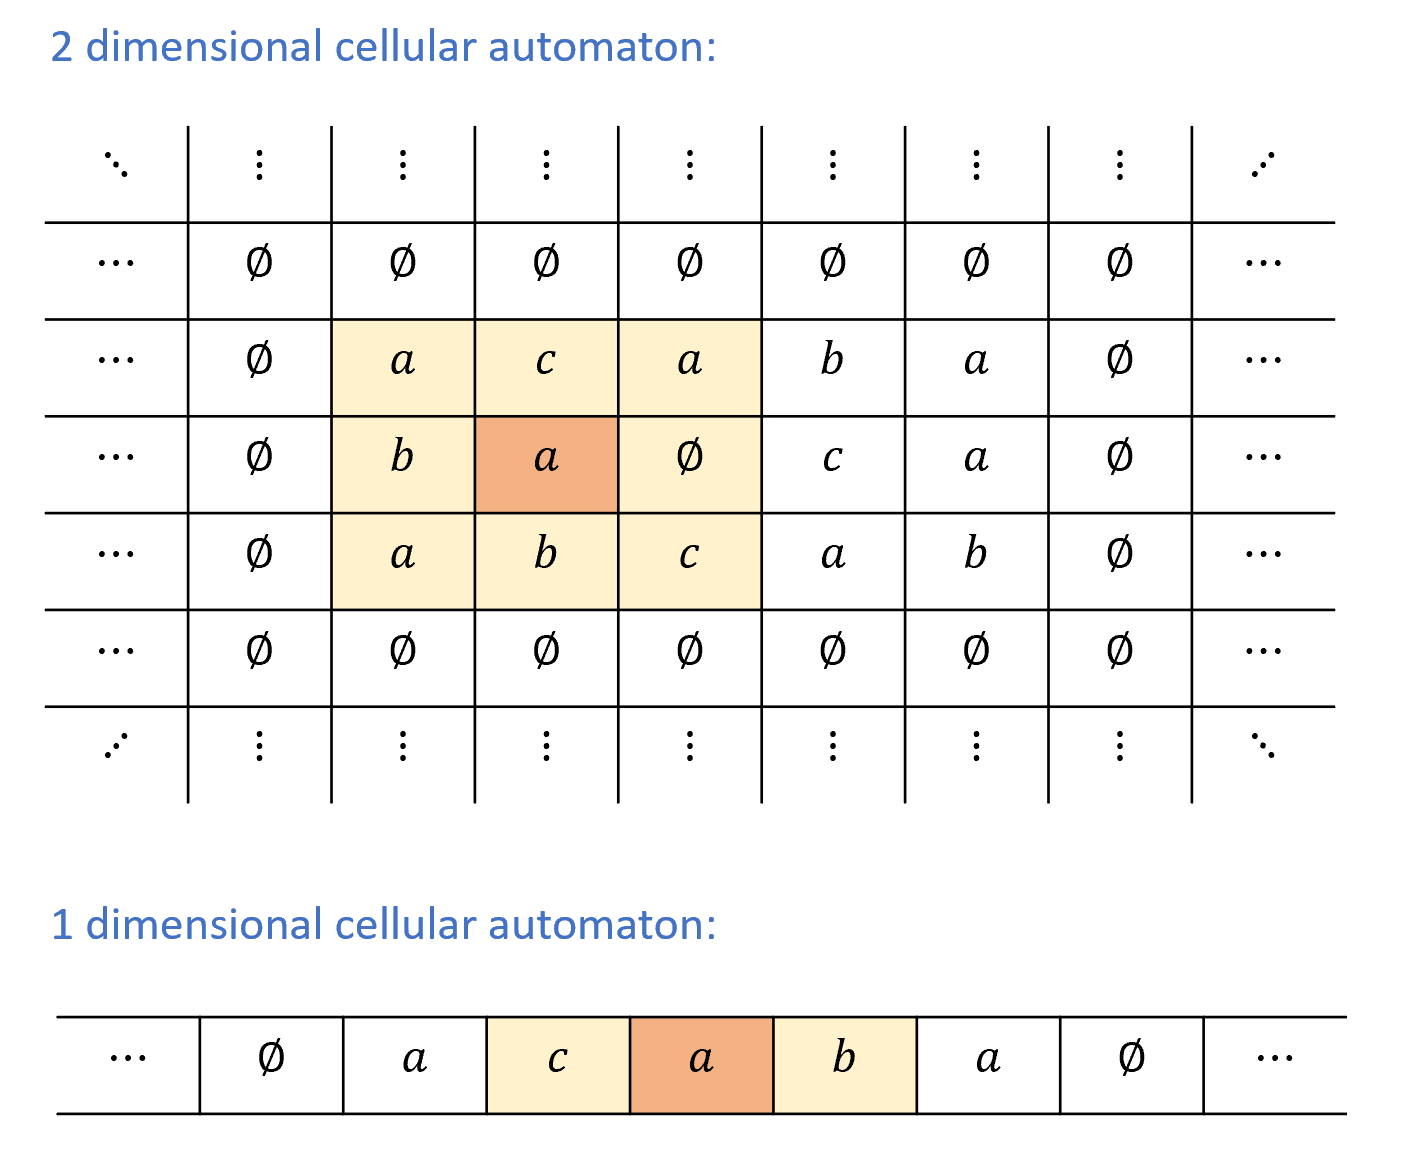 7.8: In a two dimensional cellular automaton every cell is in position i,j for some integers i,j \in \Z. The state of a cell is some value A_{i,j} \in \Sigma for some finite alphabet \Sigma. At a given time step, the state of the cell is adjusted according to some function applied to the state of (i,j) and all its neighbors (i \pm 1, j\pm 1). In a one dimensional cellular automaton every cell is in position i\in \Z and the state A_i of i at the next time step depends on its current state and the state of its two neighbors i-1 and i+1.